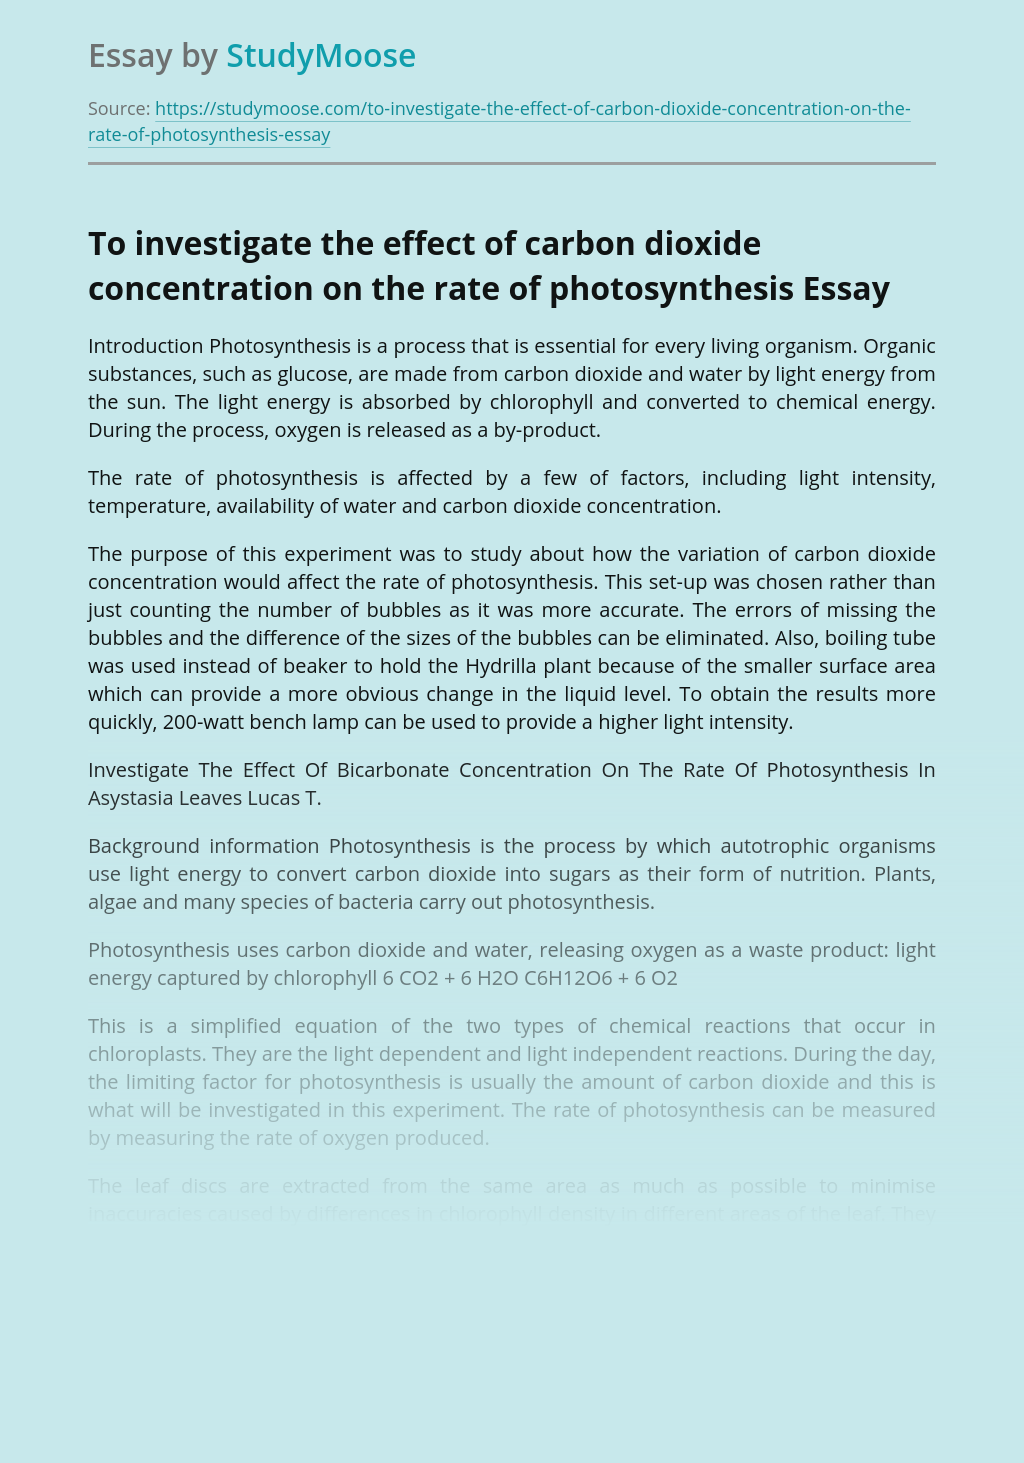 To investigate the effect of carbon dioxide concentration on the rate of photosynthesis